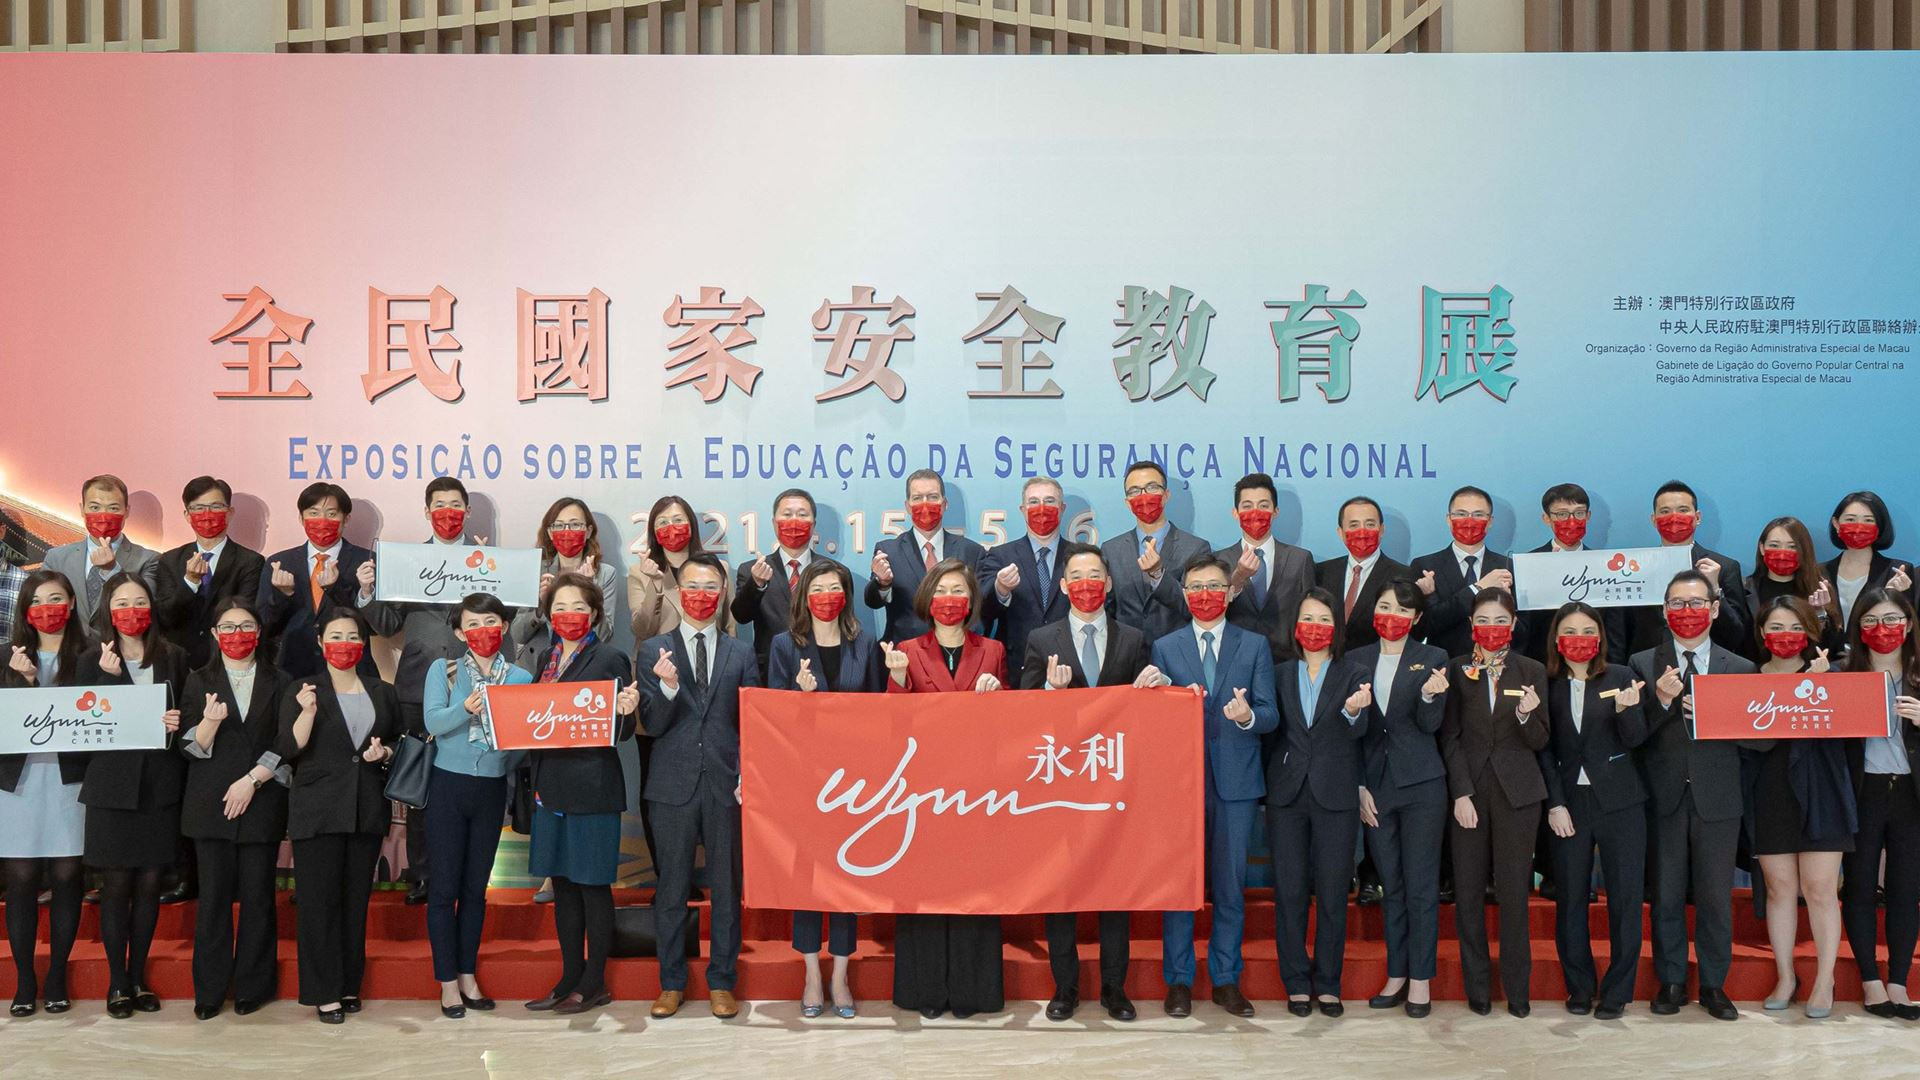 Wynn takes part in National Security Education Exhibition for the third consecutive year